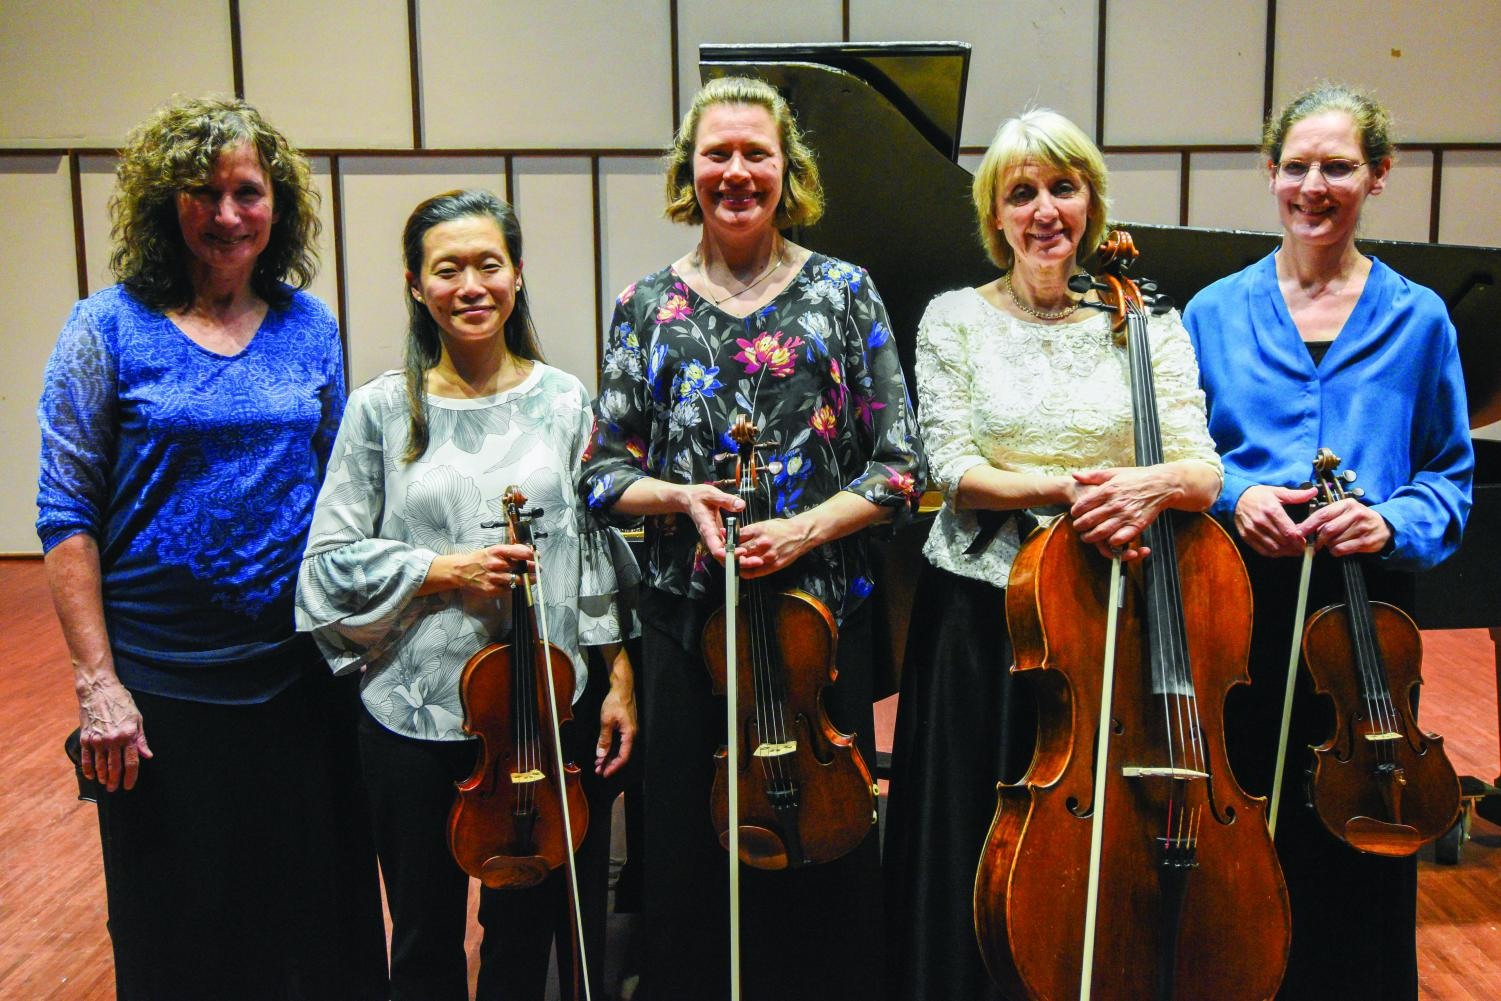 Members of the Illinois Chamber Music faculty posing with their instruments.